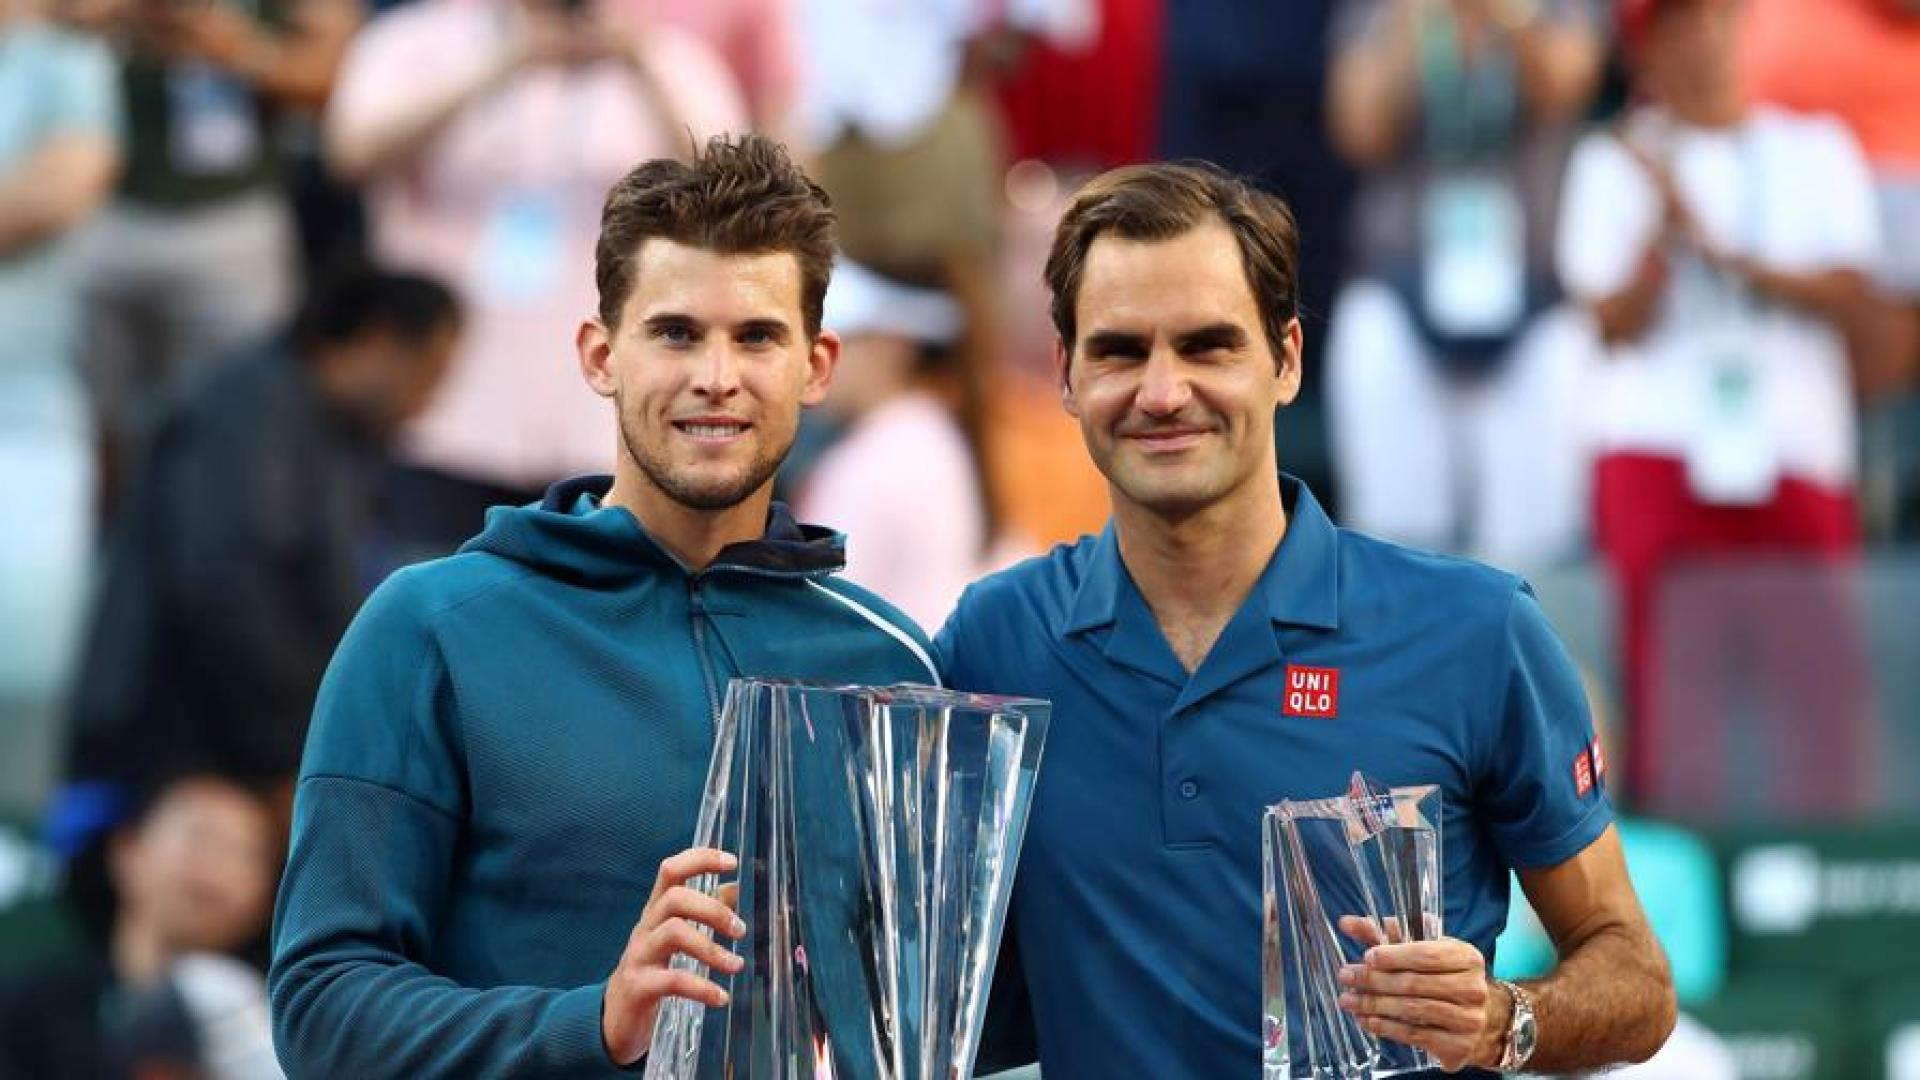 Coach reveals what makes Dominic Thiem and Roger Federer similar